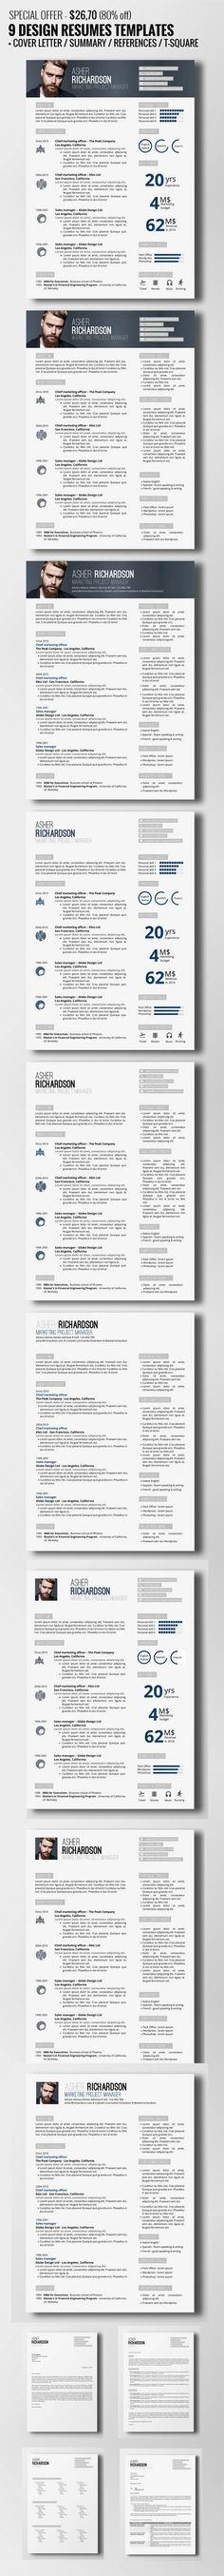 435 best Resume images on Pinterest Resume design, Design resume - free eye catching resume templates